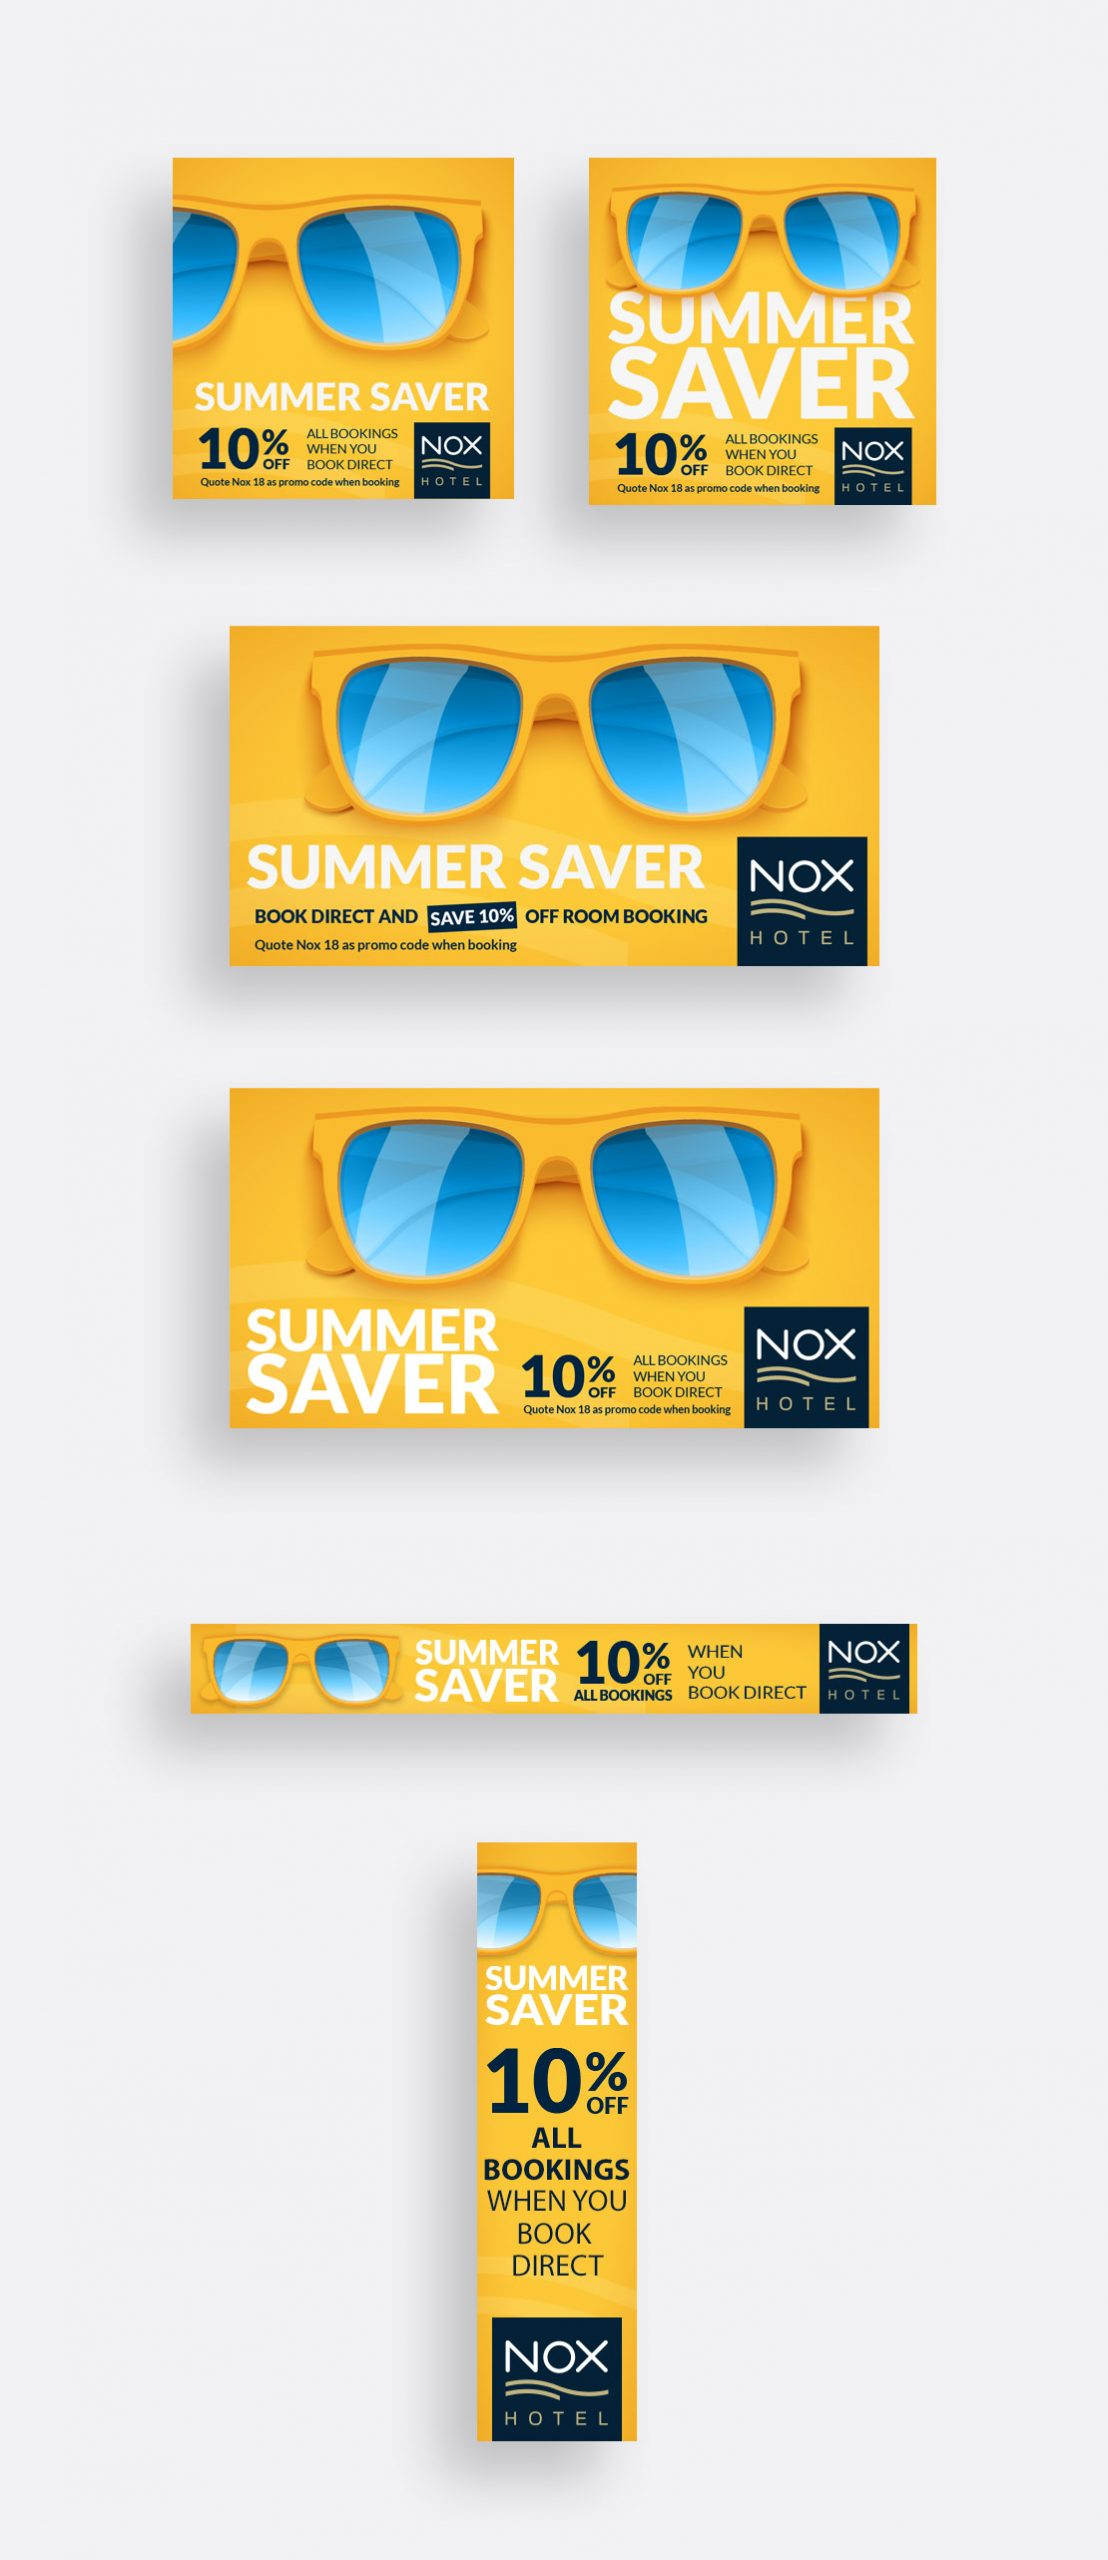 Nox Hotel 'Summer Saver' social media and online advertising campaign